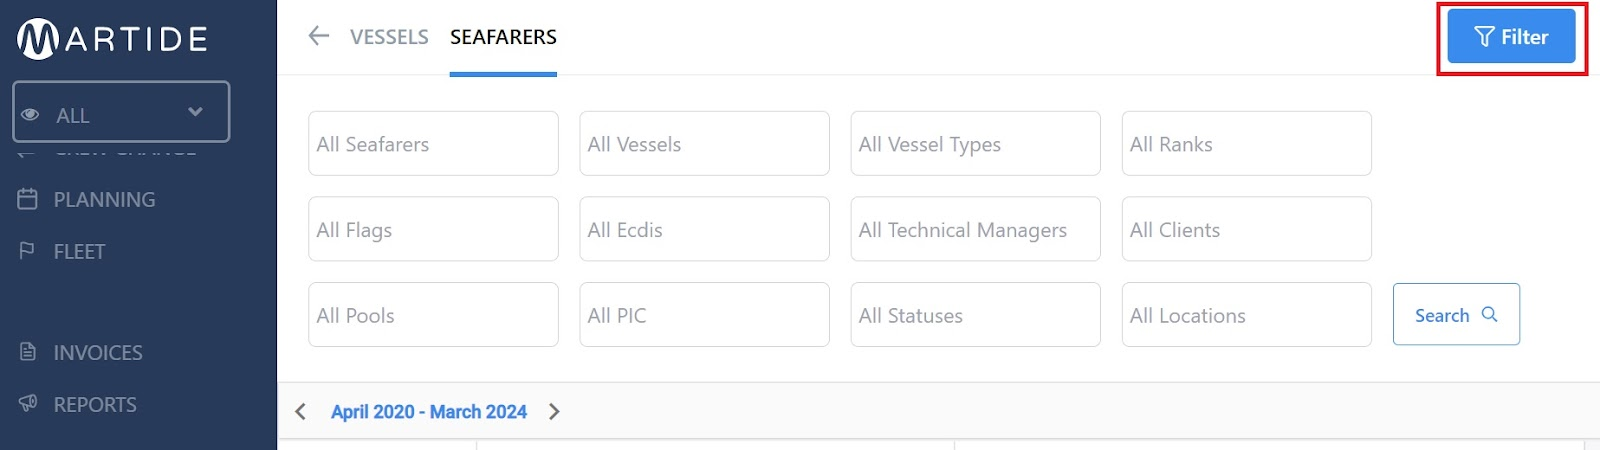 screenshot of the seafarers page showing the filter button